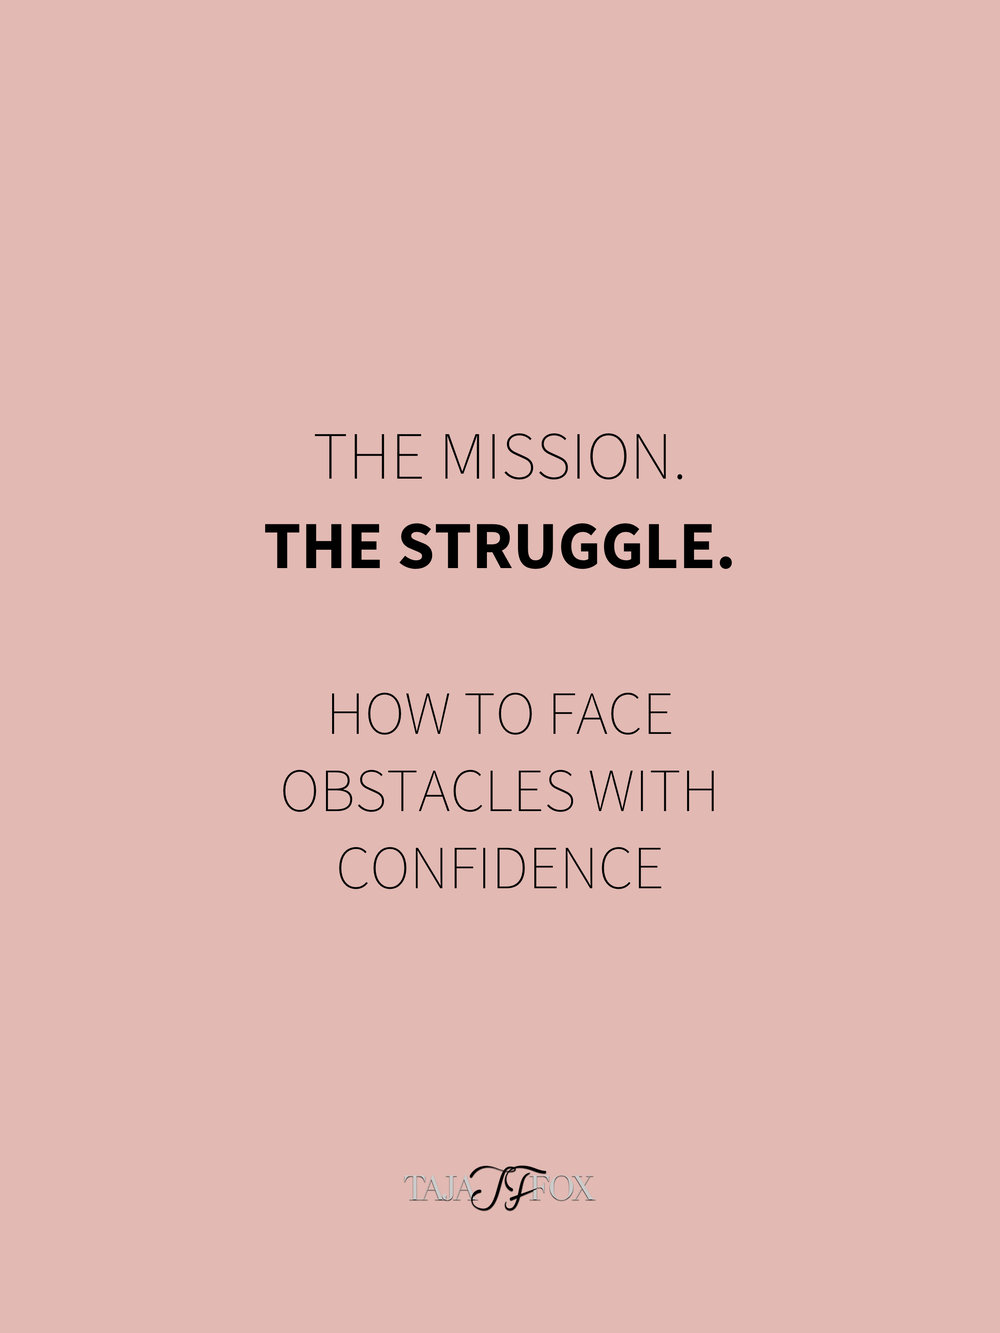 how to face obstacles with confidence tajafox.com.jpg